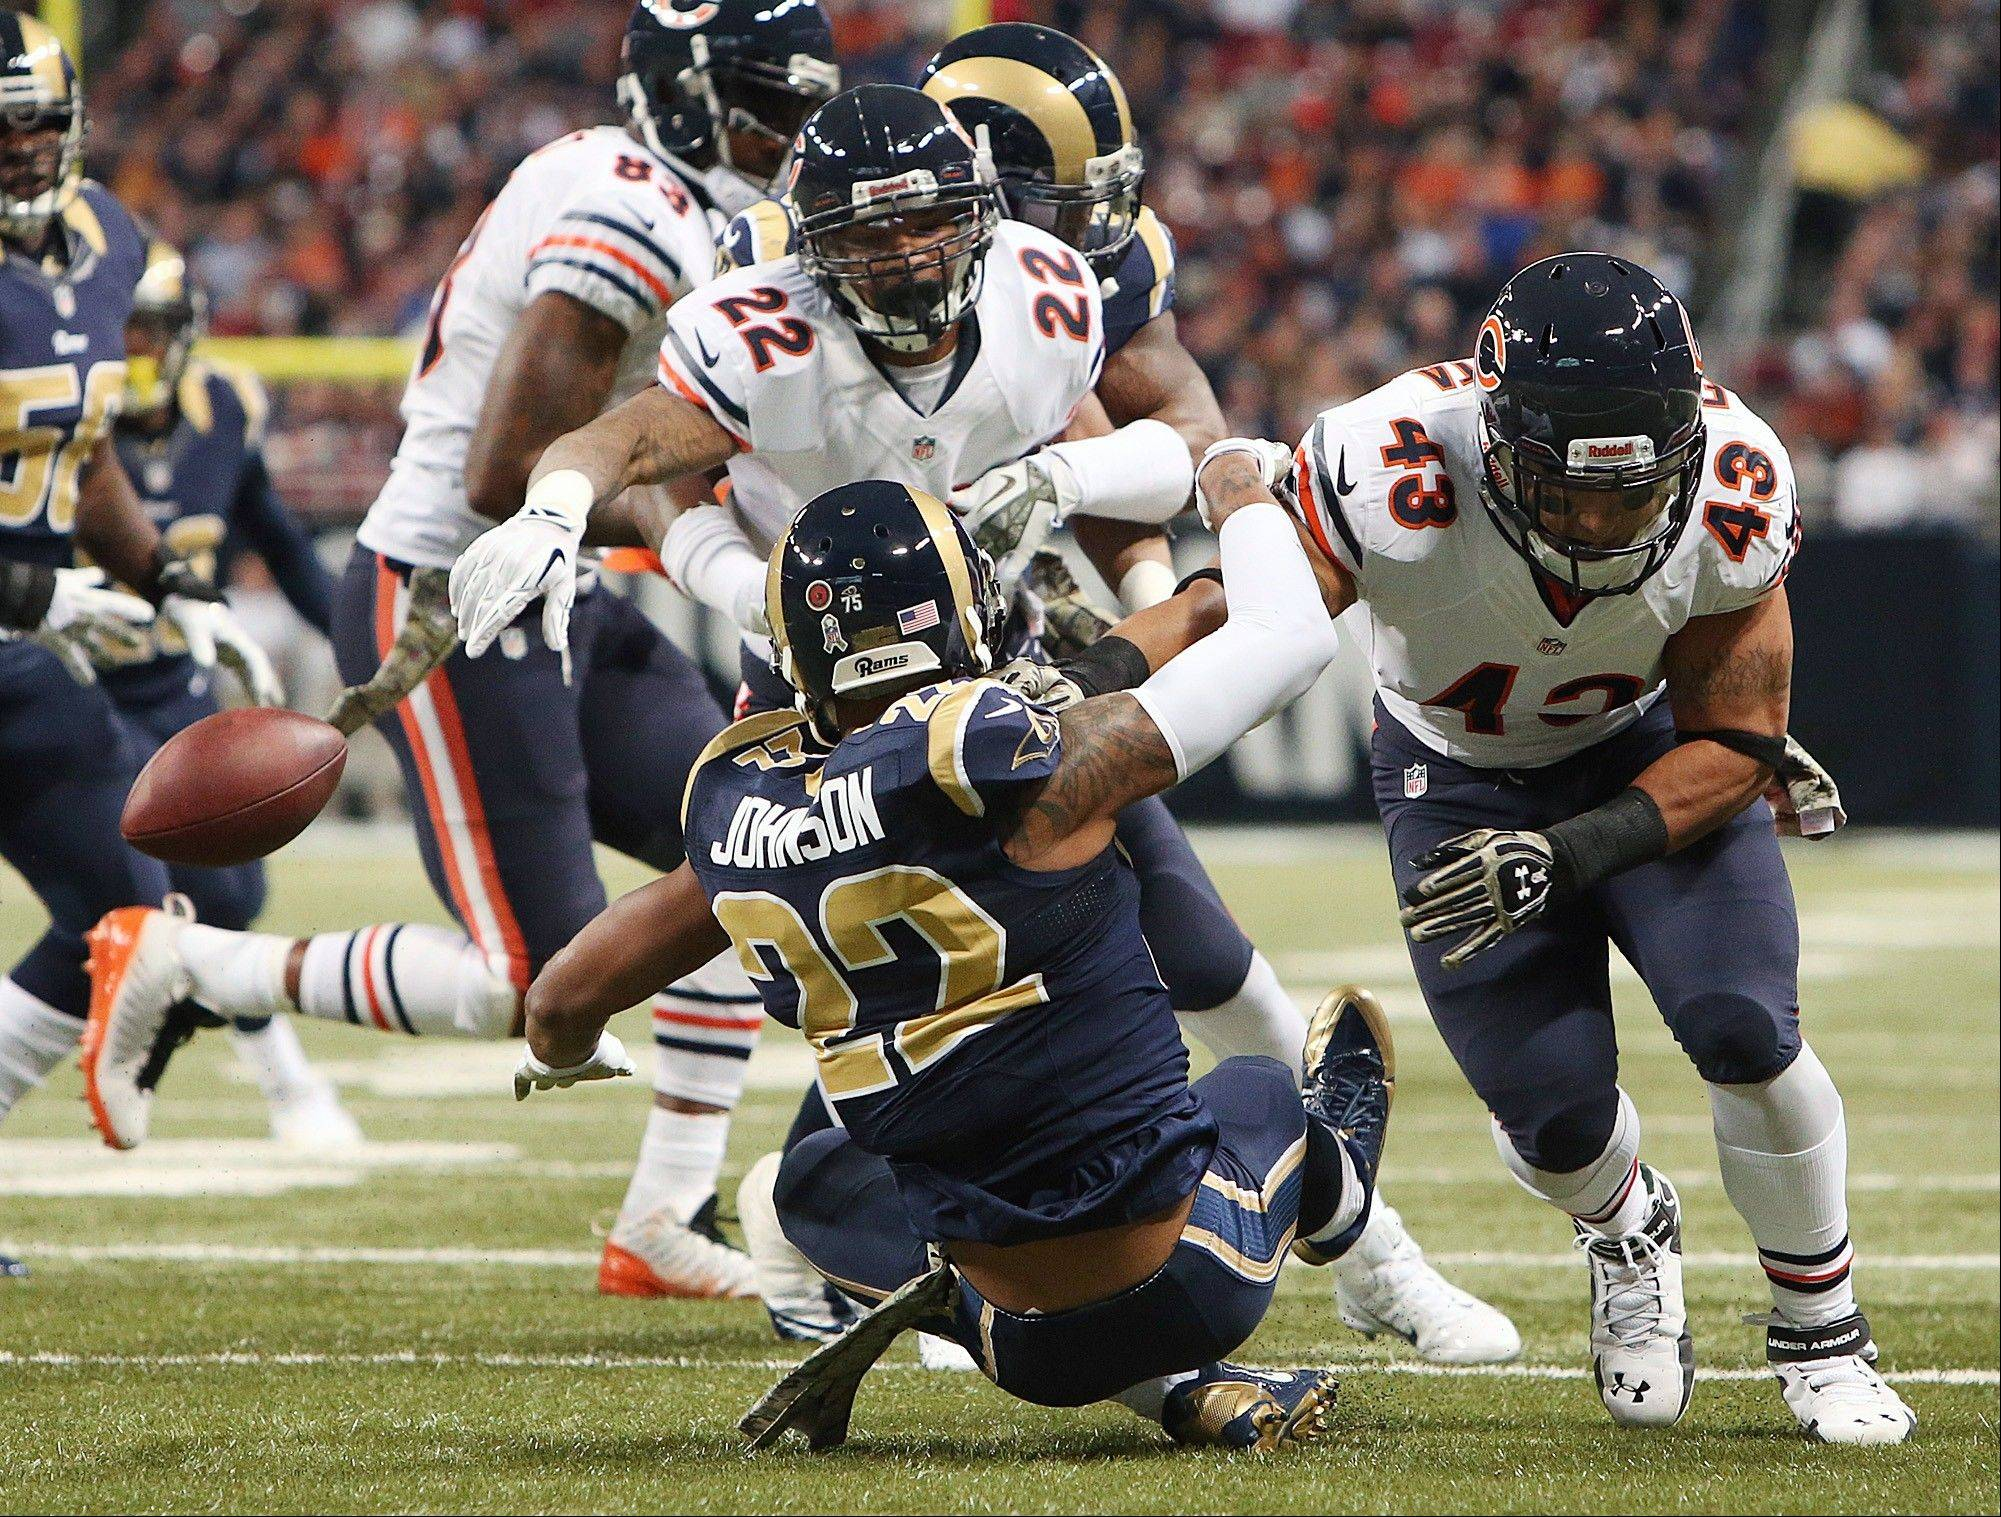 Rams cornerback Trumaine Johnson (22) forces a fumble by Chicago Bears running back Matt Forte (22) during the first half of an NFL football game on Sunday, Nov. 24, 2013, in St. Louis.